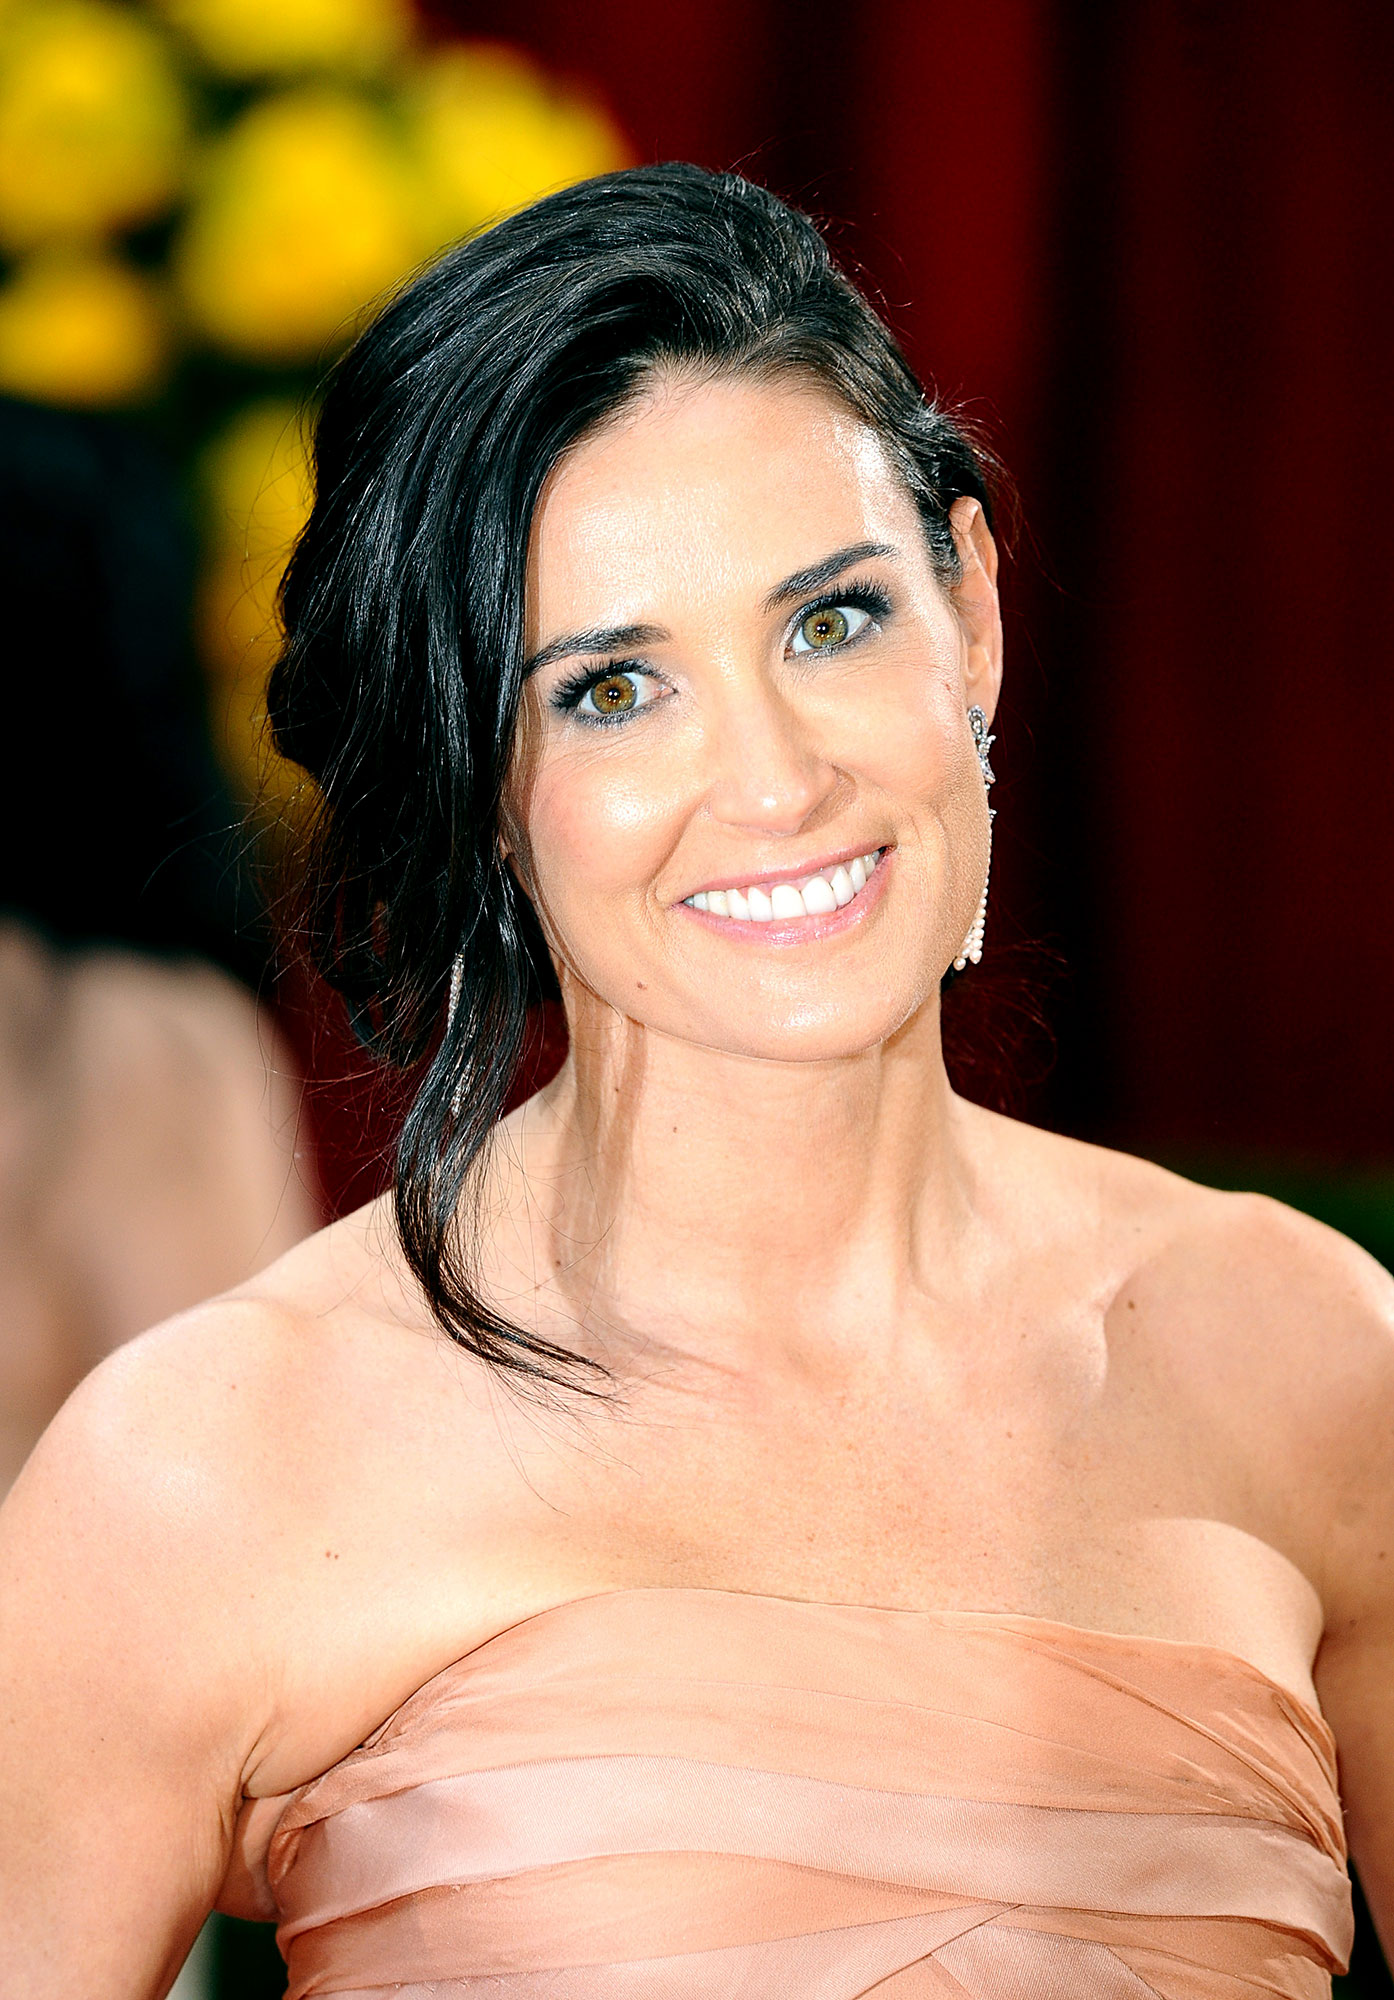 Demi Moore - Stars Who Have Never Won Oscars - Not even Moore 's grueling stint as soldier Jordan O'Neil in G.I. Jane convinced the Academy to hand over a golden statue to her — or even nominate her for one, for that matter.